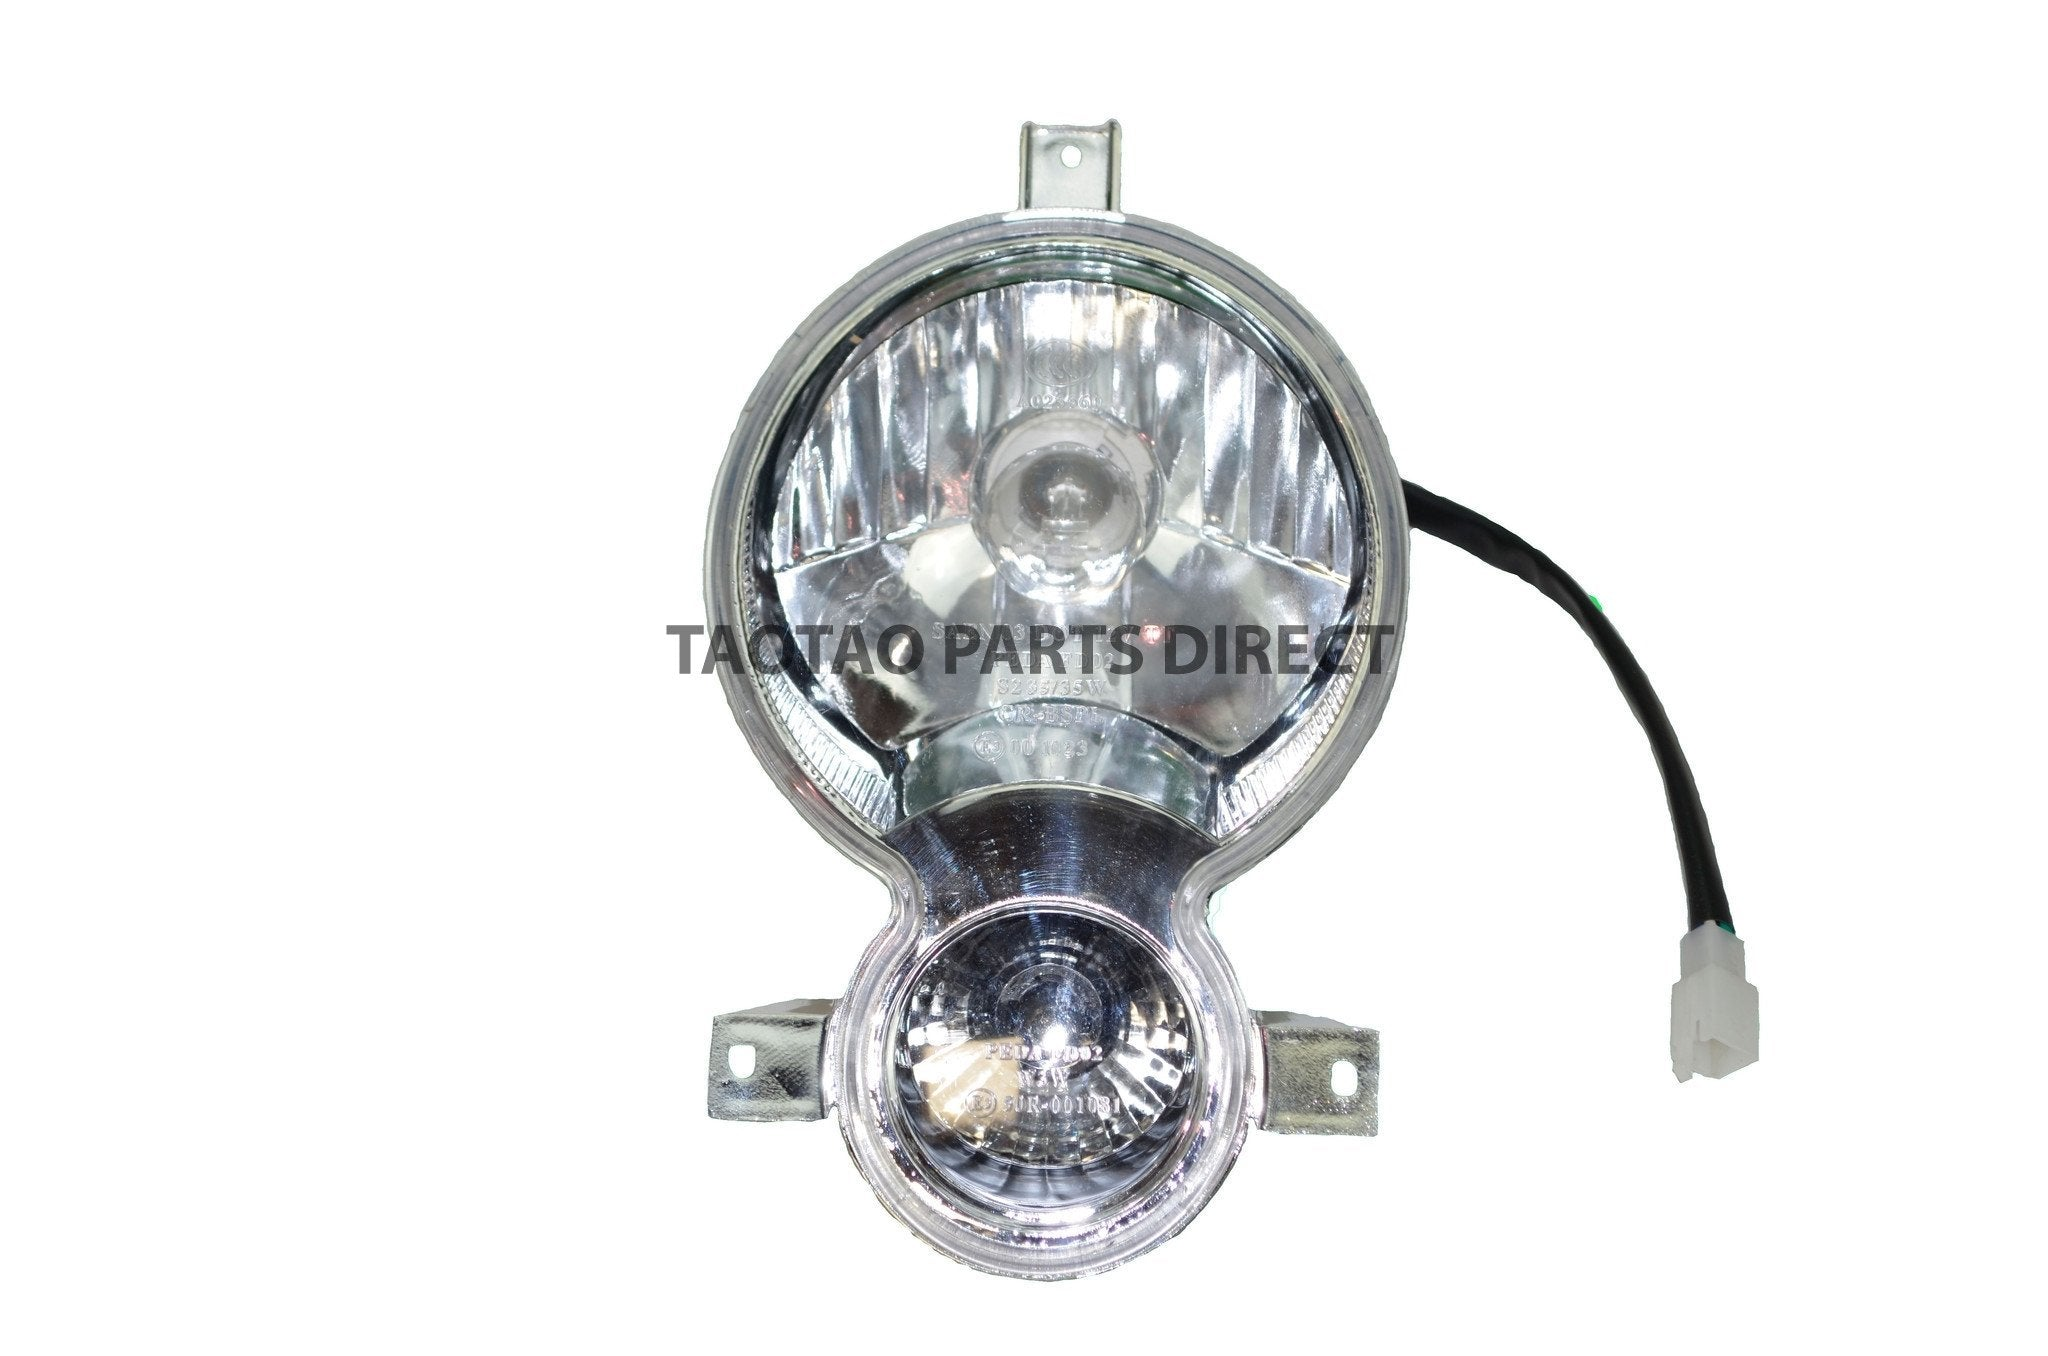 Scooter Parts - Powermax 150 Headlight